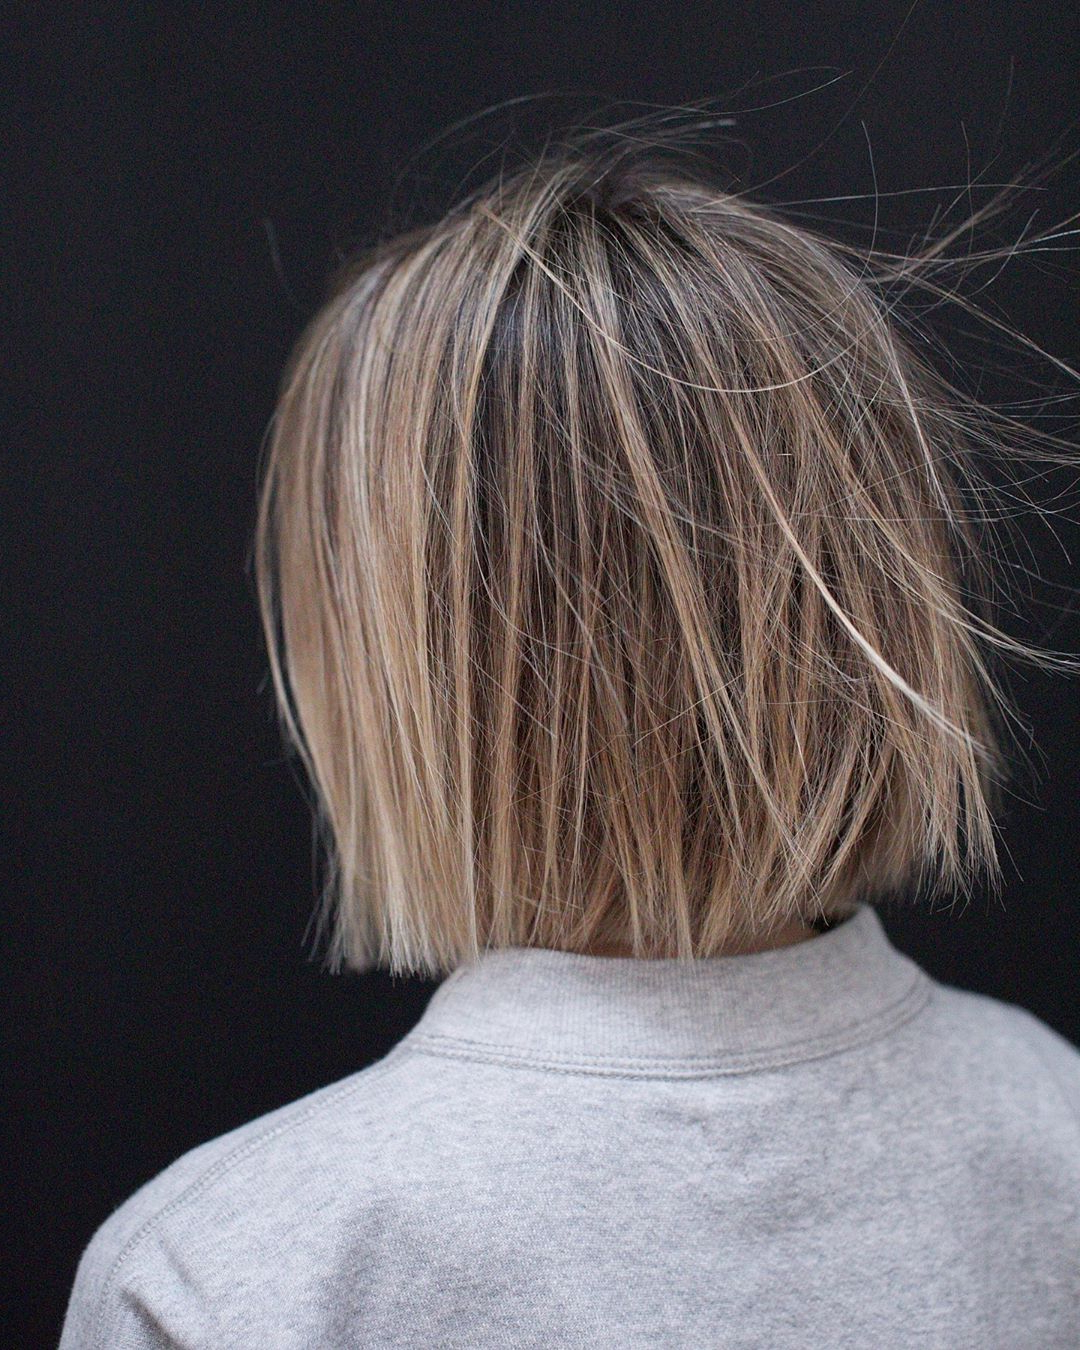 10 Casual Medium Bob Hair Cuts – Female Bob Hairstyles 2020 With Regard To Most Current Texturized Tousled Bob Hairstyles (View 10 of 20)